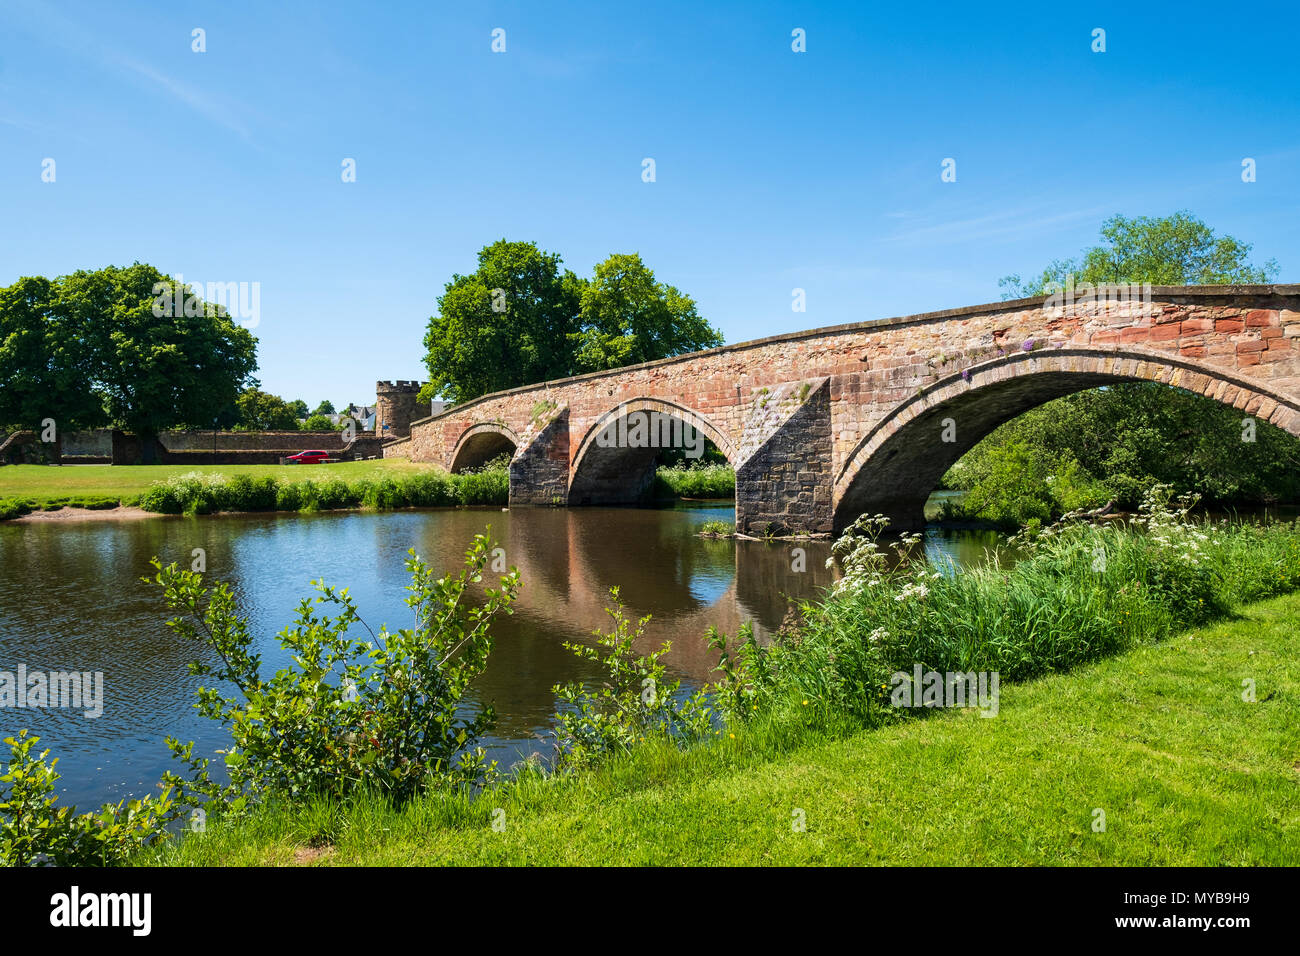 Nungate Bridge and River Tyne at Haddington, East Lothian, Scotland, UK - Stock Image